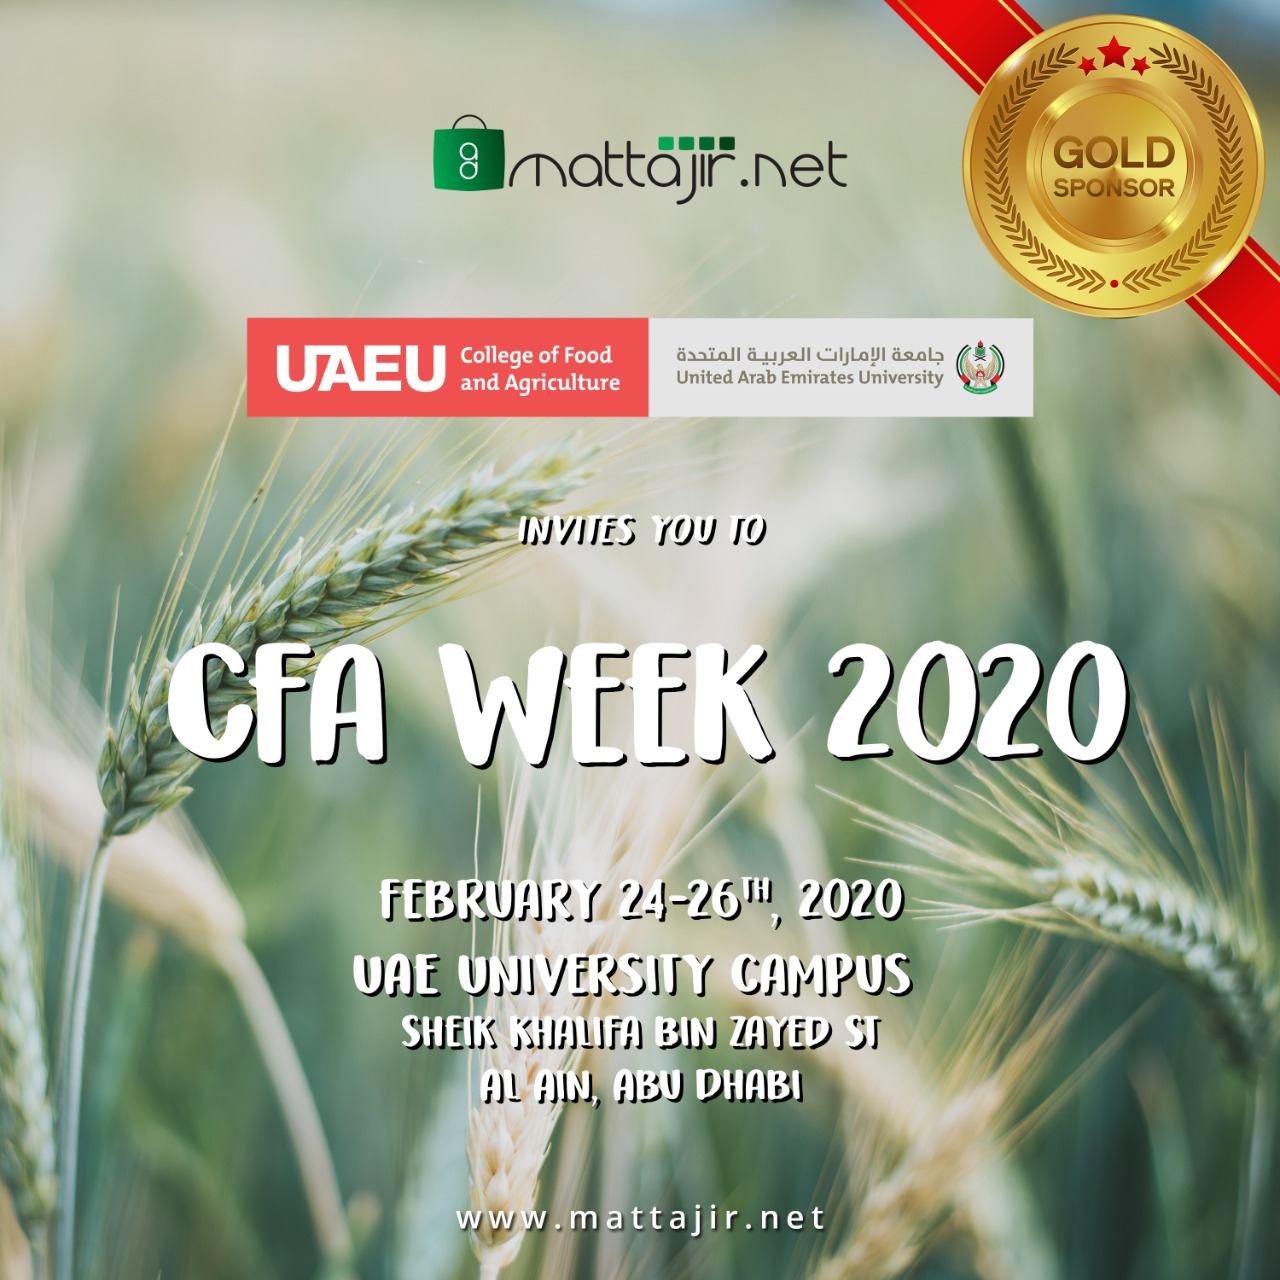 CFA EVENTS 2020 - UAE University